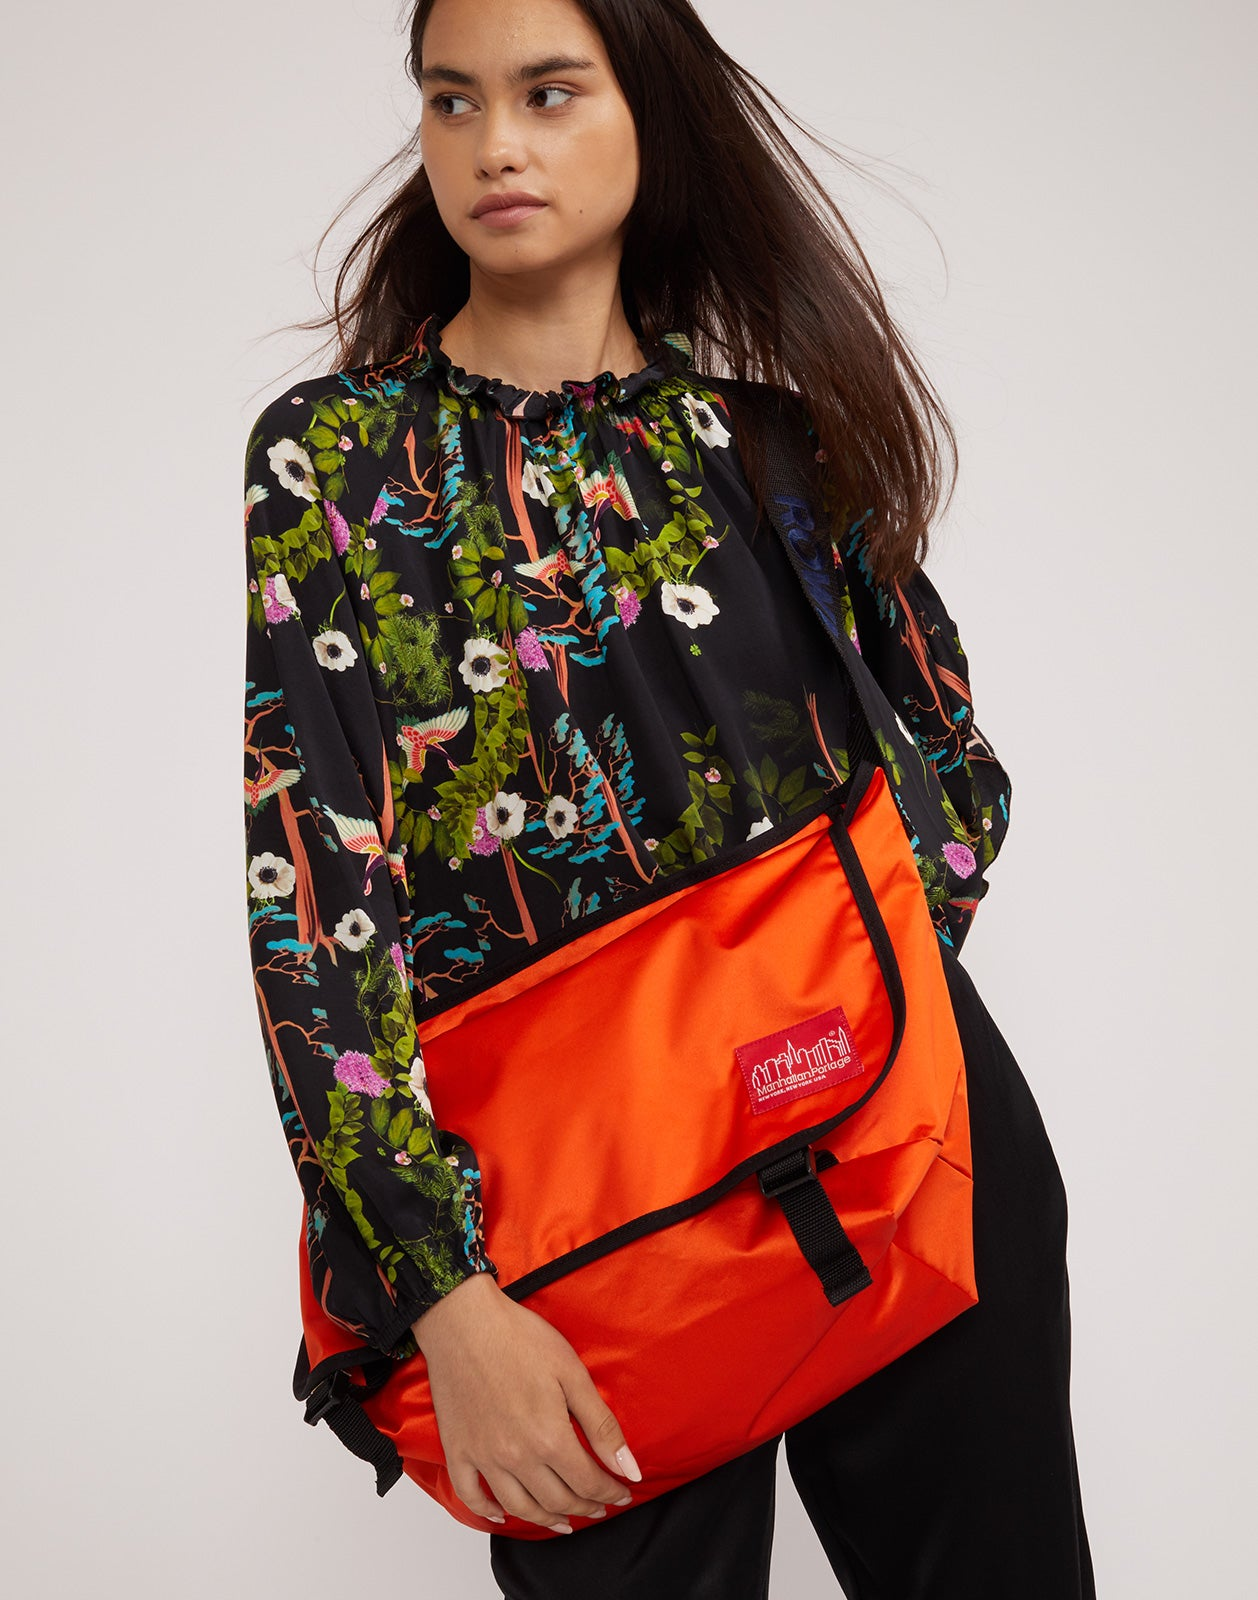 Front view of Windsor ruffle sleeve blouse and Manhattan portage messenger bag in orange satin.